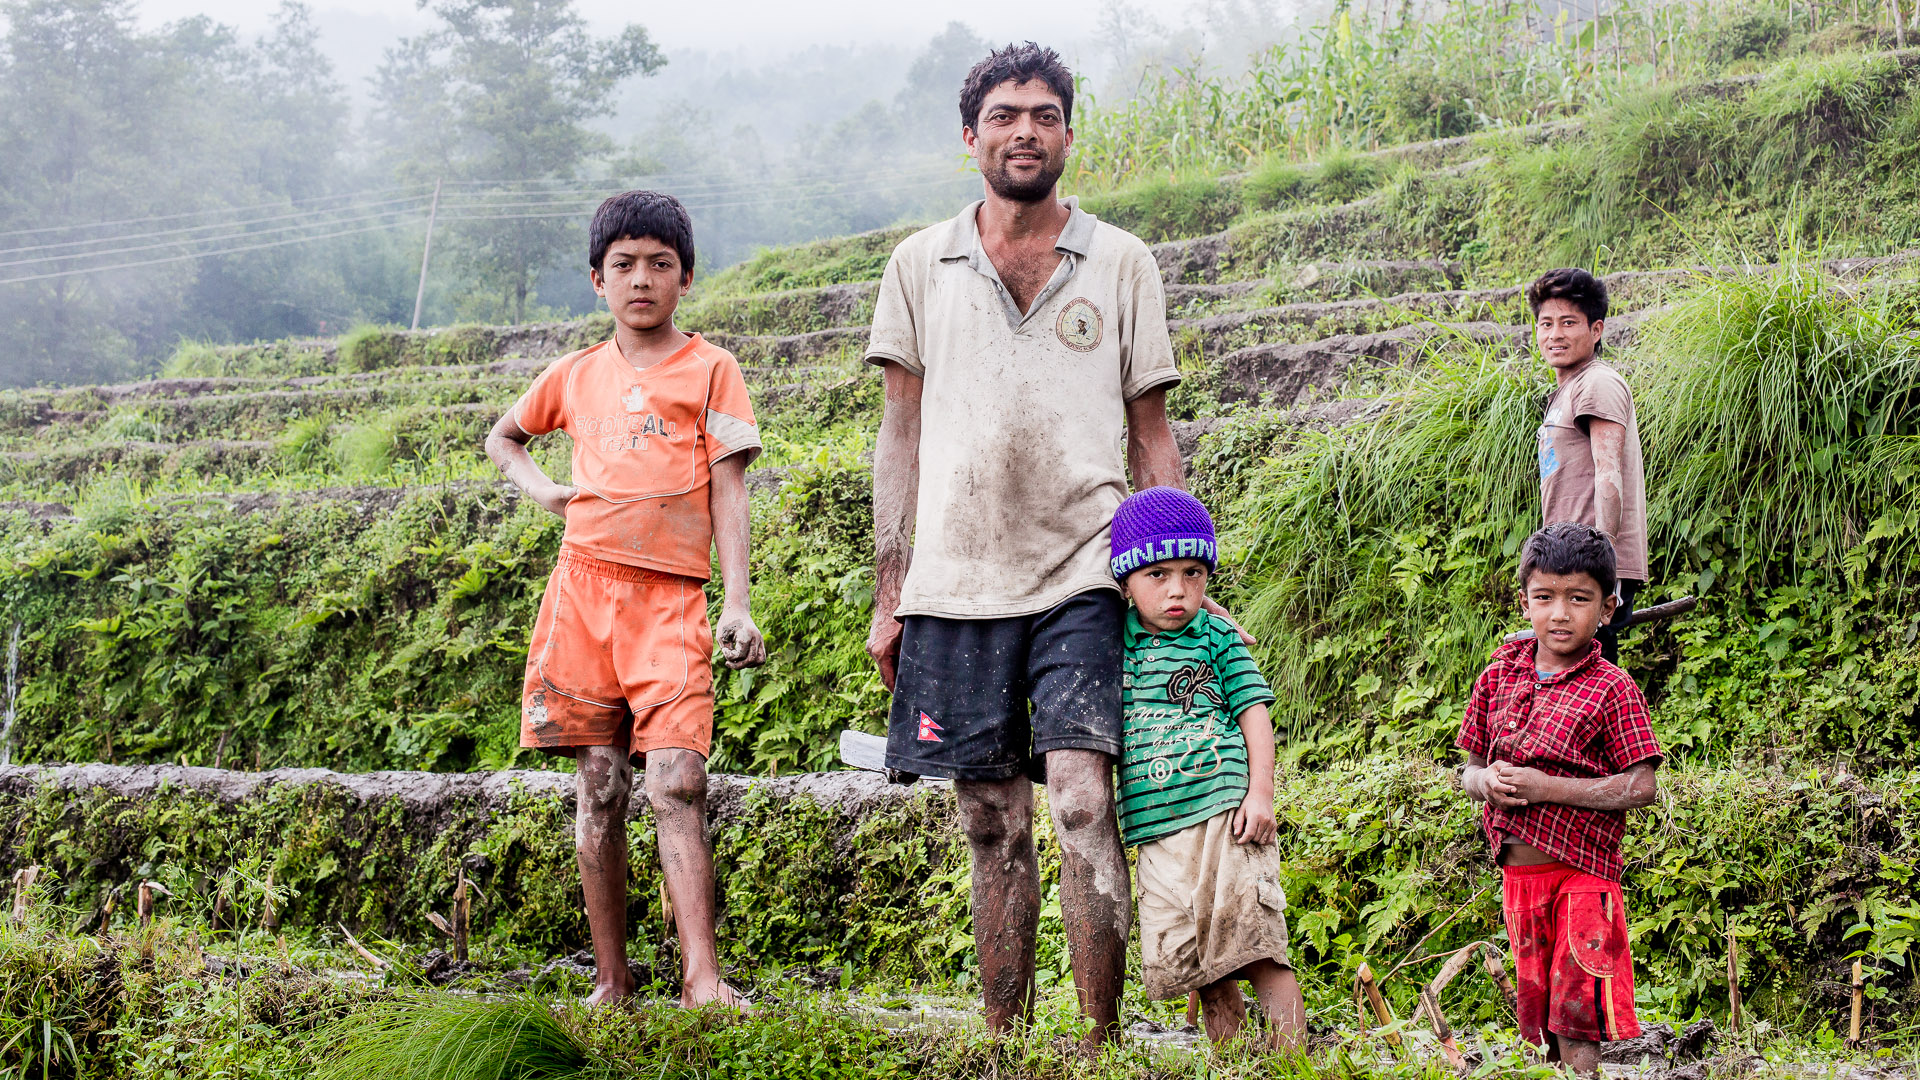 Dili Bastola posing with his children while working on his fields. Dili is starting a fish business by creating a fish pond just bit lower on the mountain.